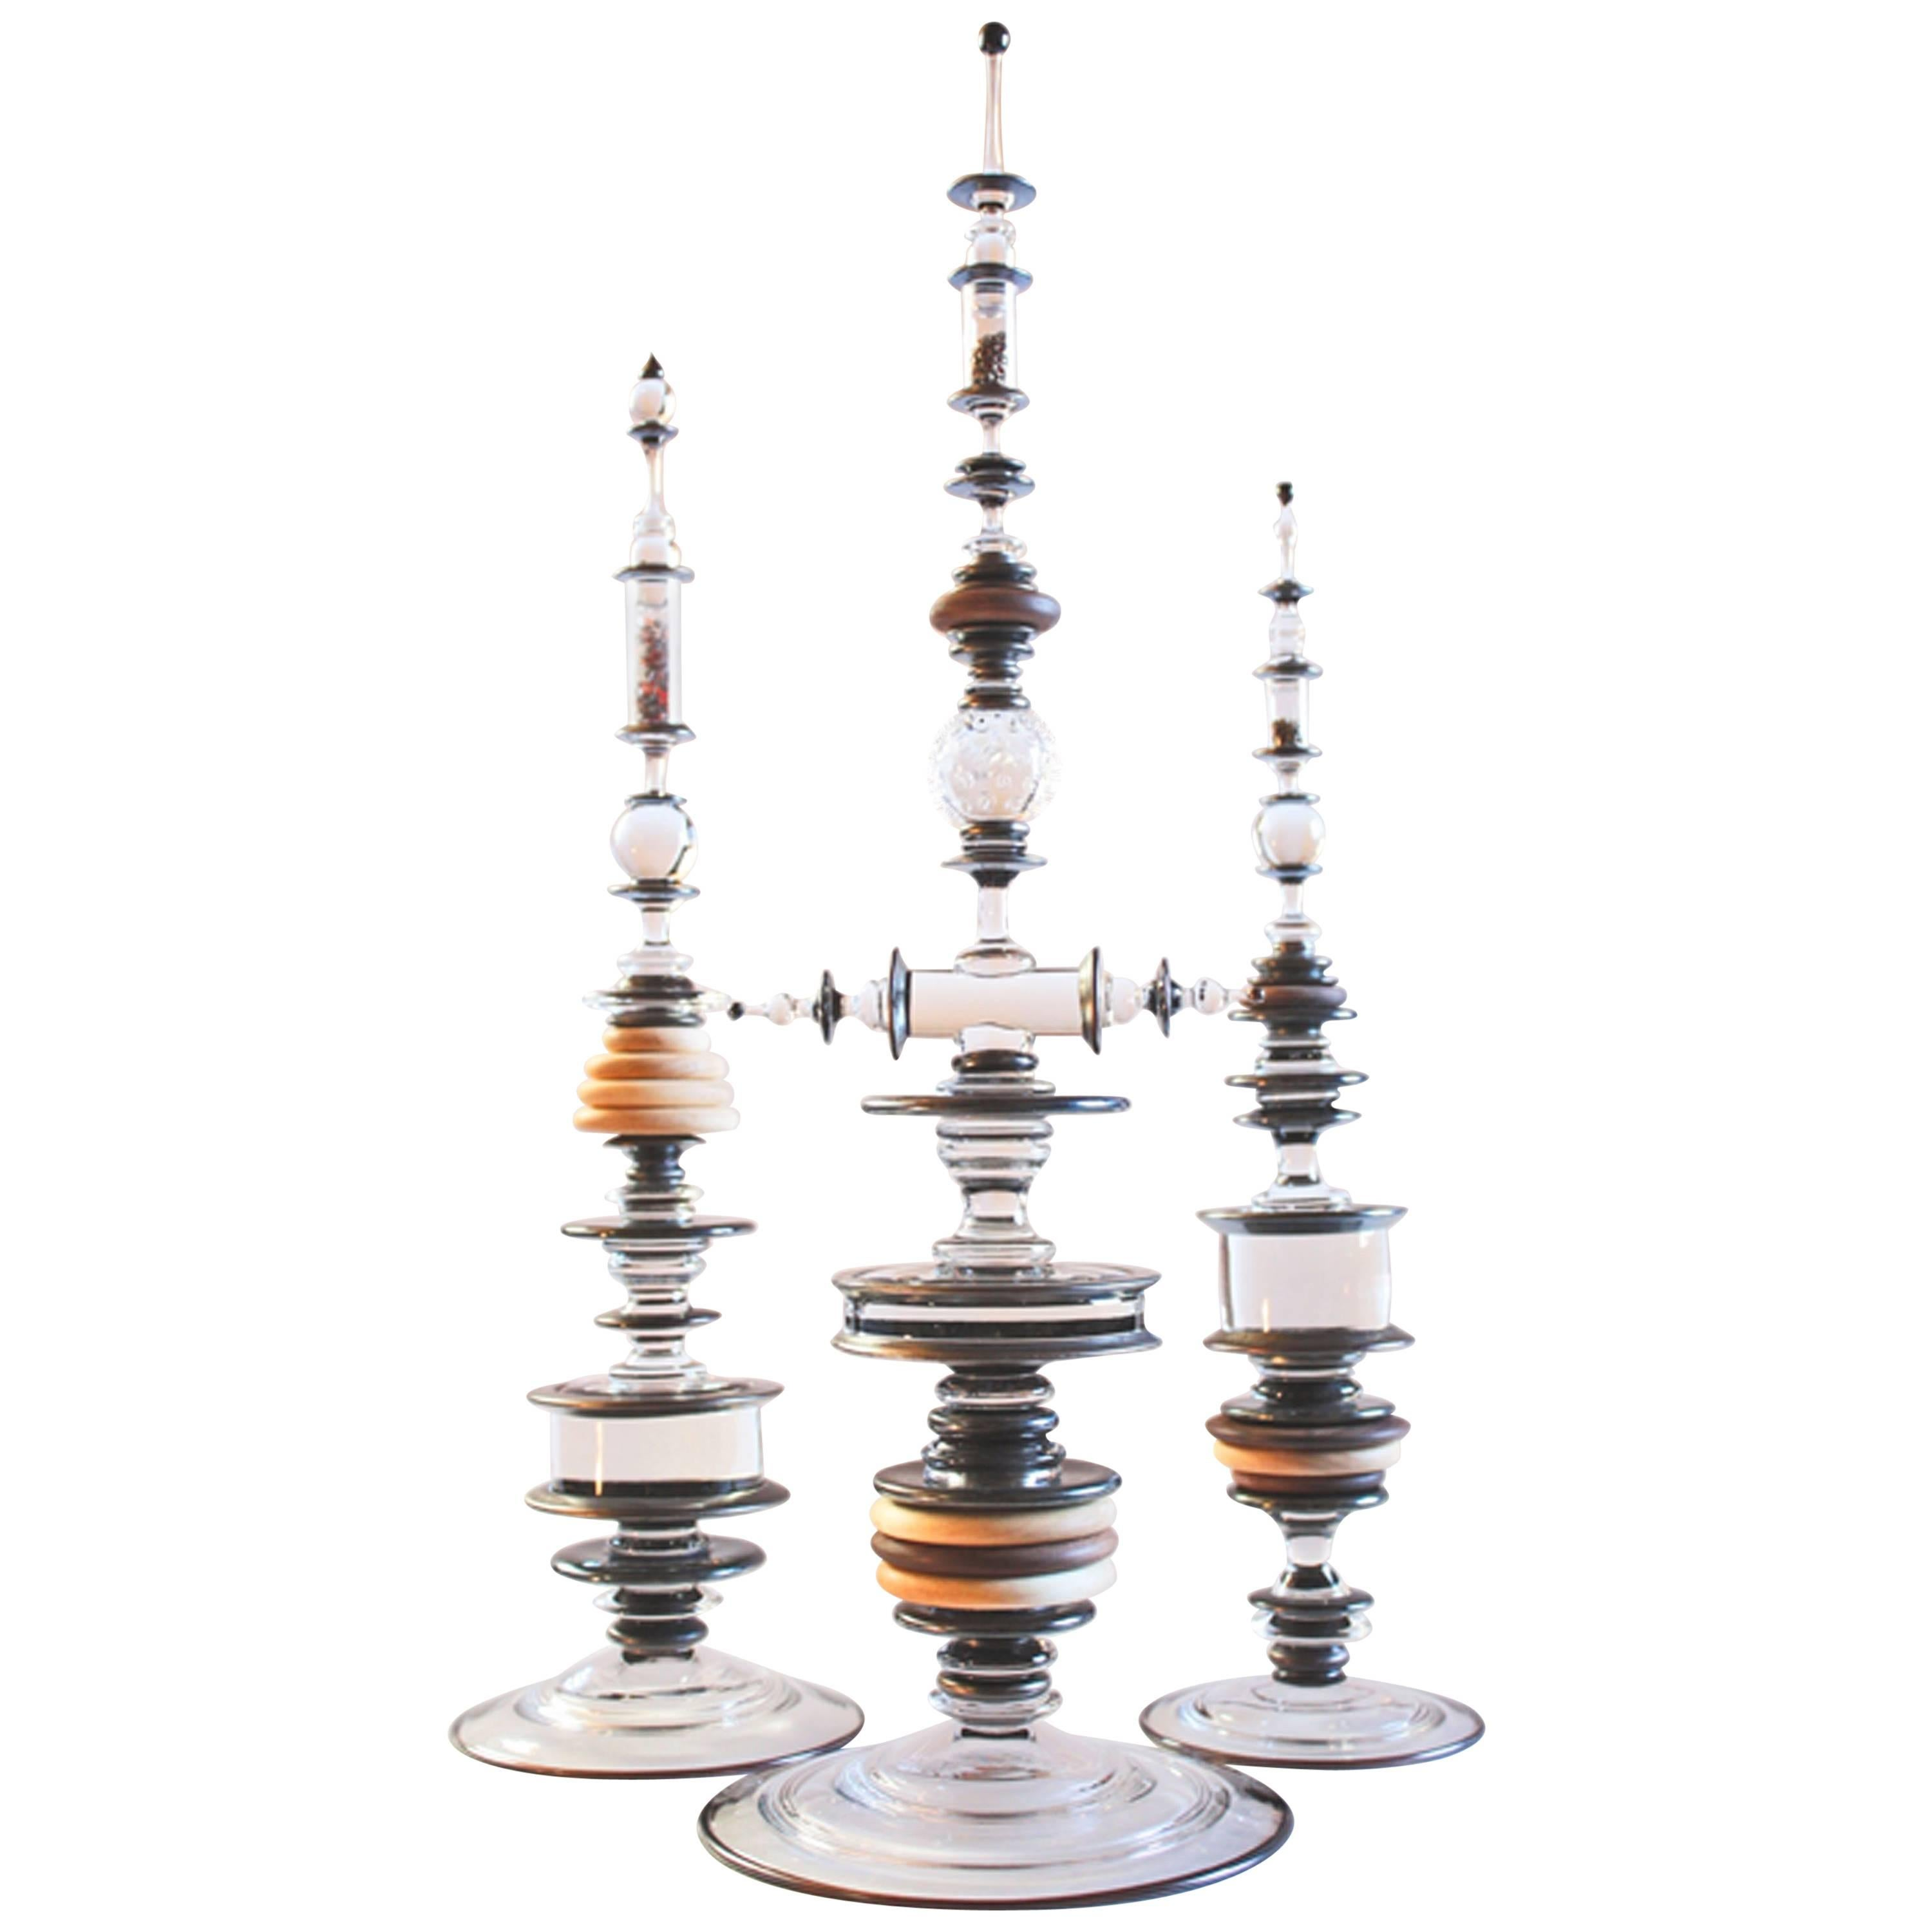 Reliquary Group Sculpture in Glass by Andy Paiko